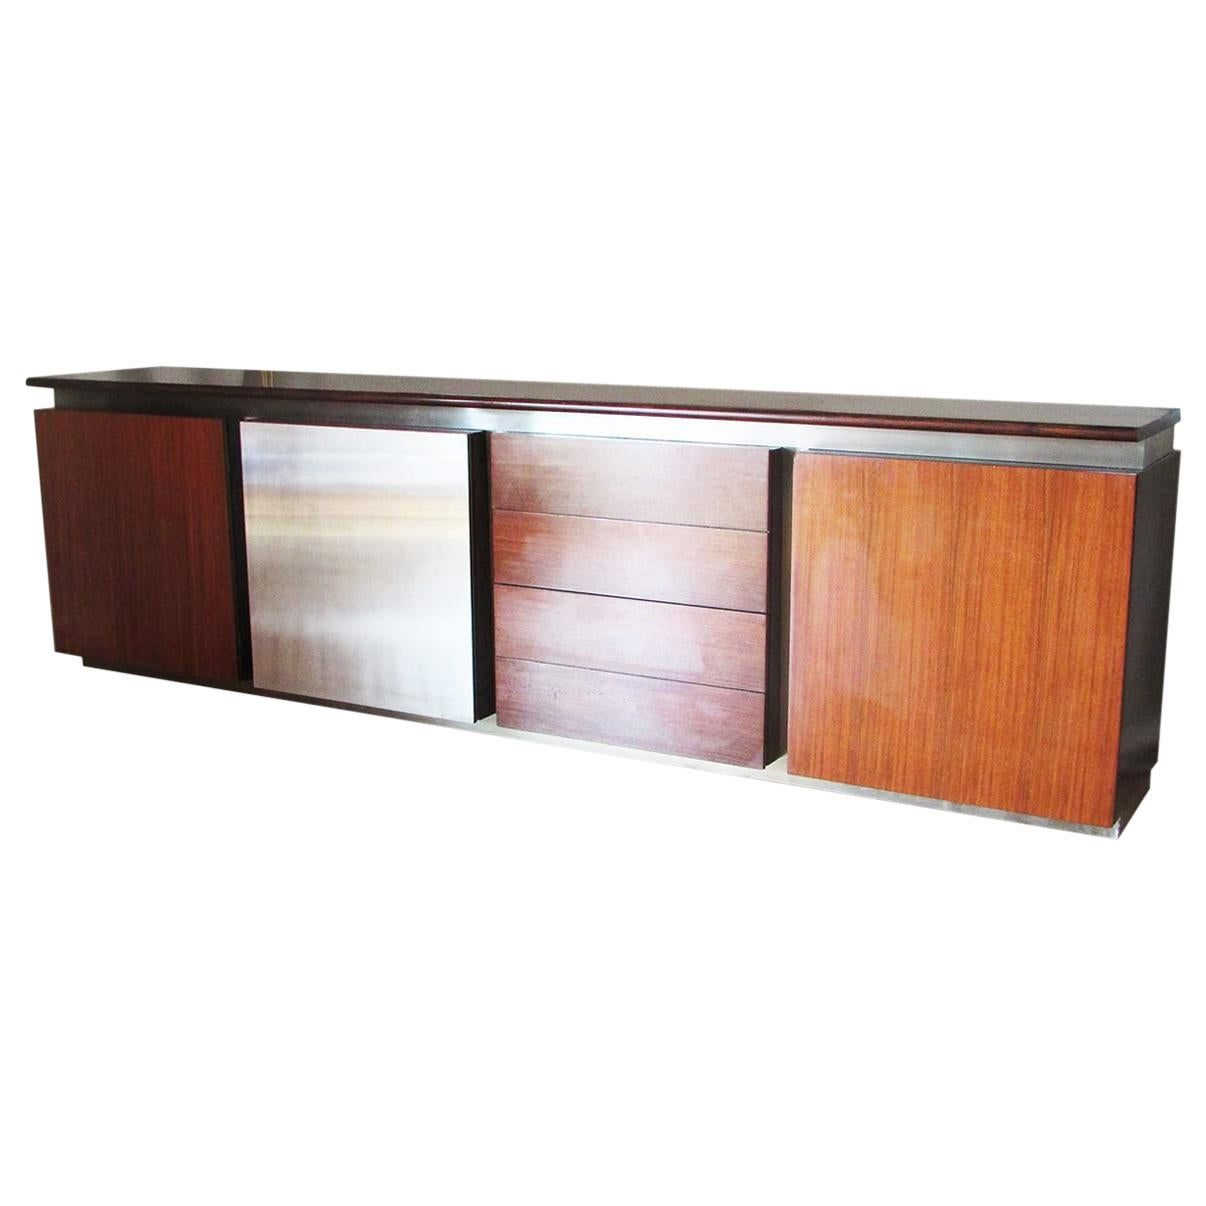 Mid-Century Modern, Italy, 1970 Stainless Steel Sideboard by Giotto Stoppino